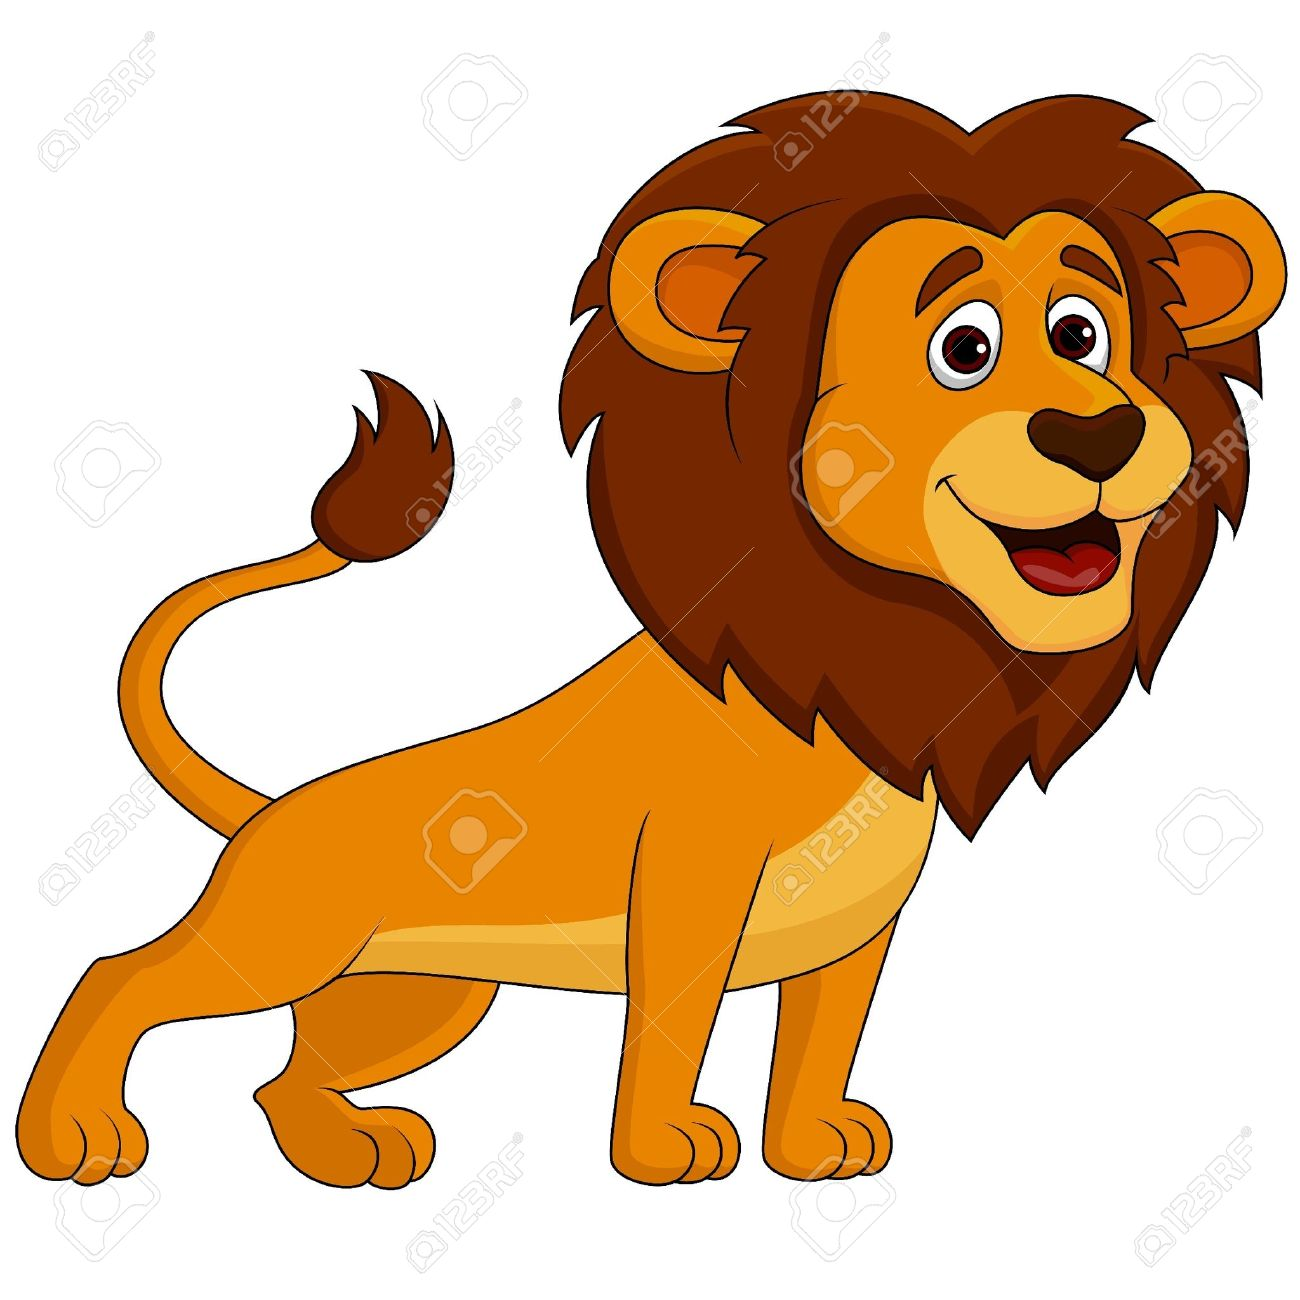 cute lion cartoon royalty free cliparts vectors and stock rh 123rf com lion king clip art free lion king clip art free